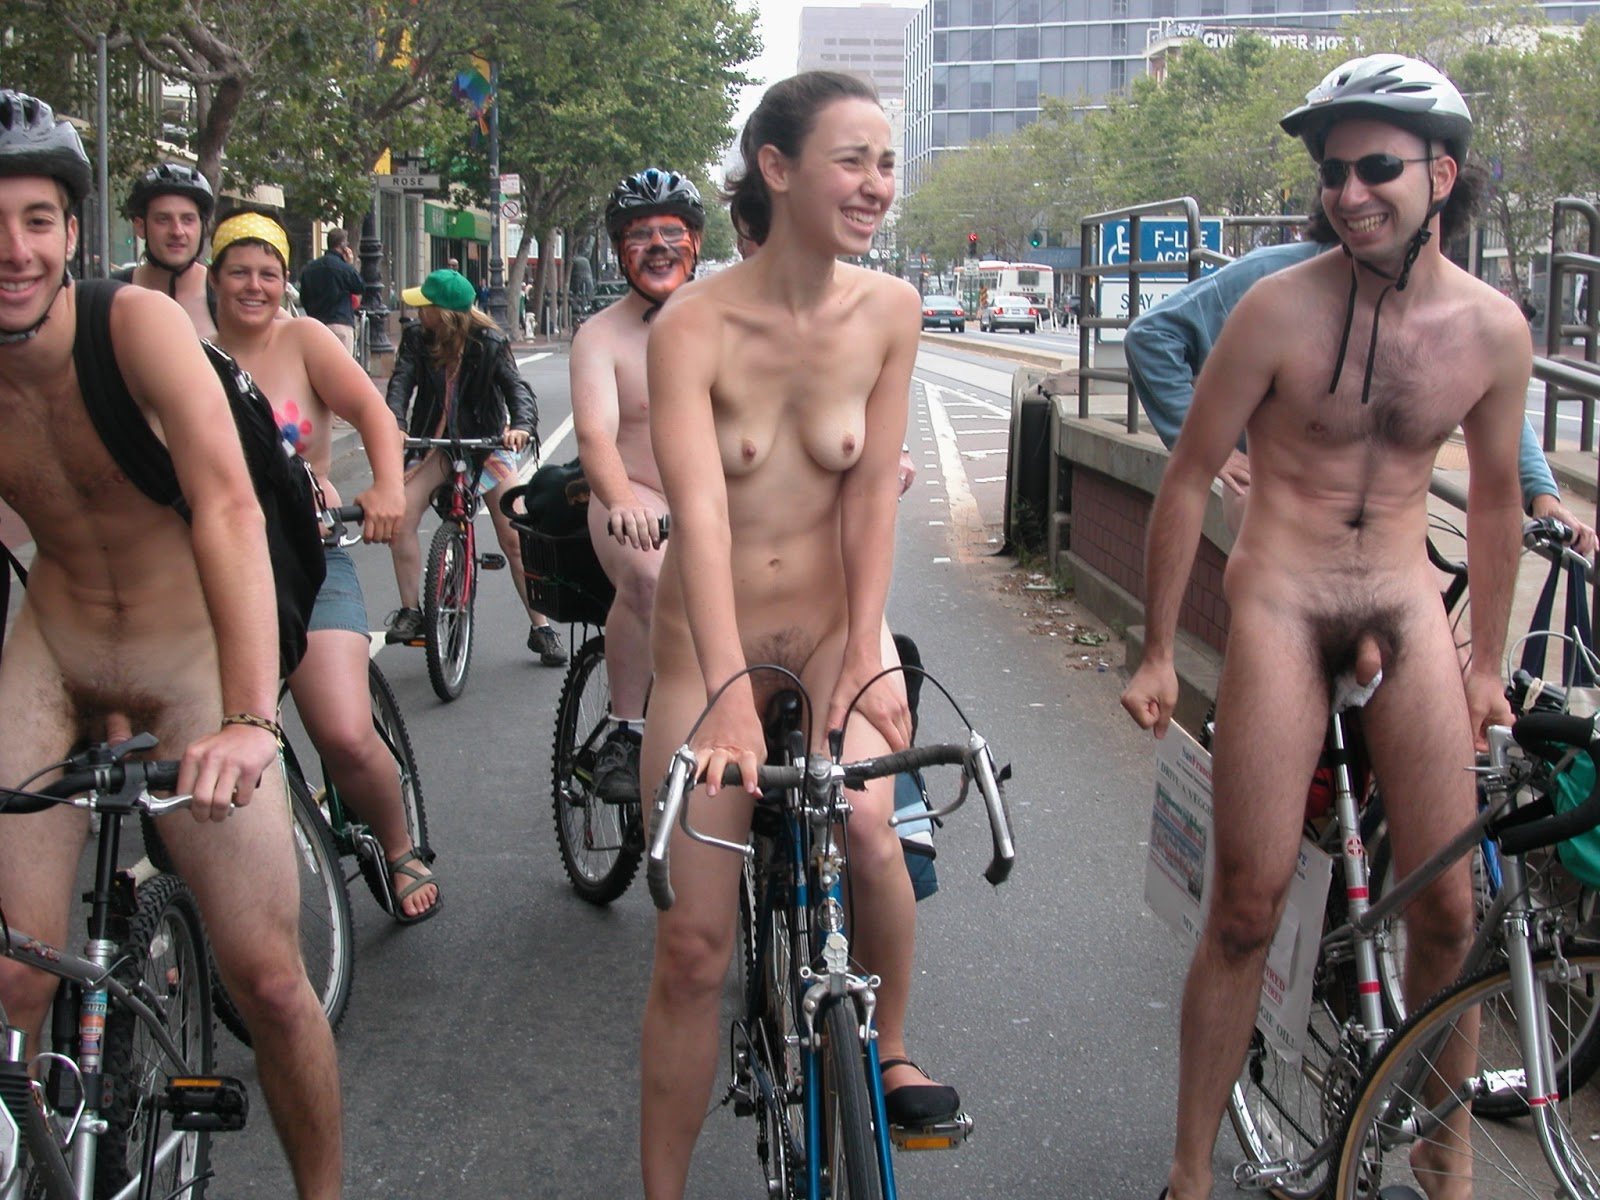 cfnm street bikers World Naked Bike Ride